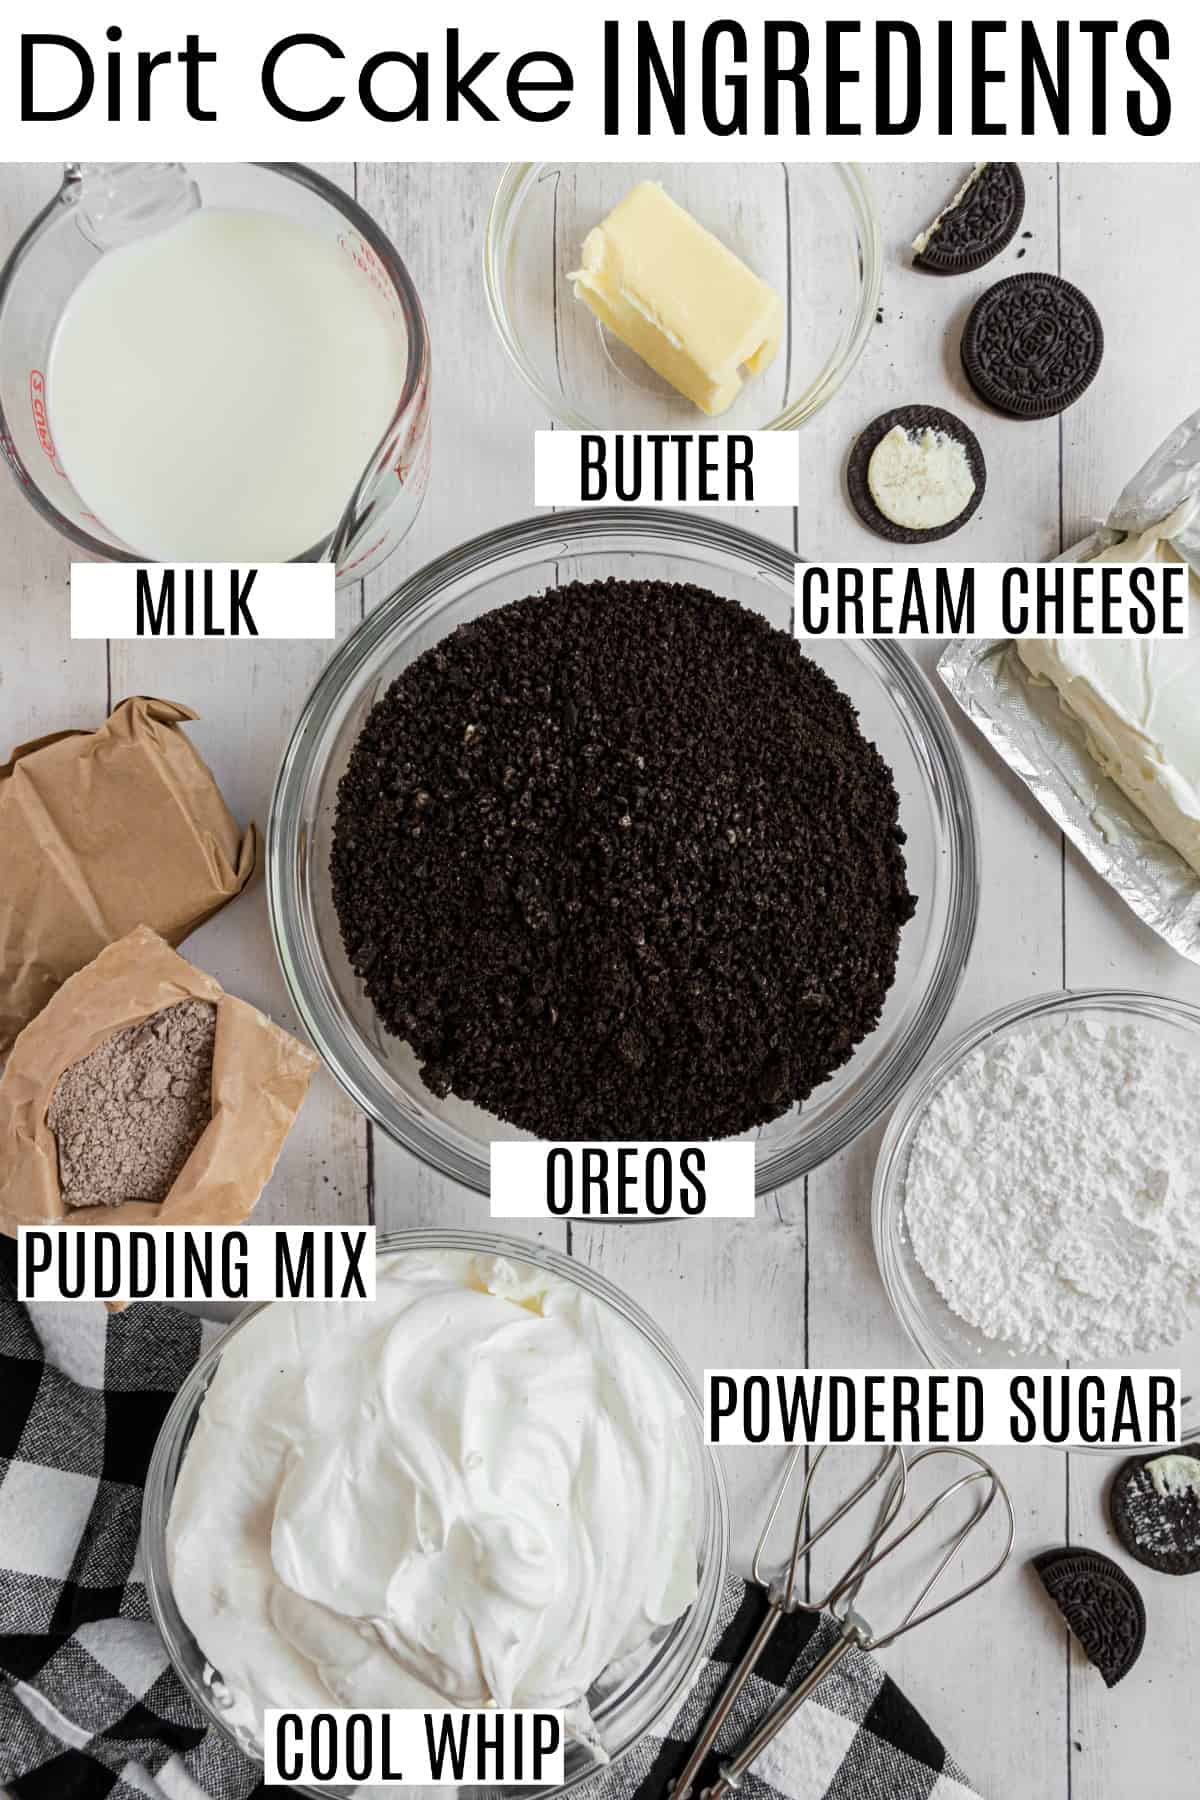 Dirt cake ingredients in small glass bowls, including oreos, pudding, and cool whip.